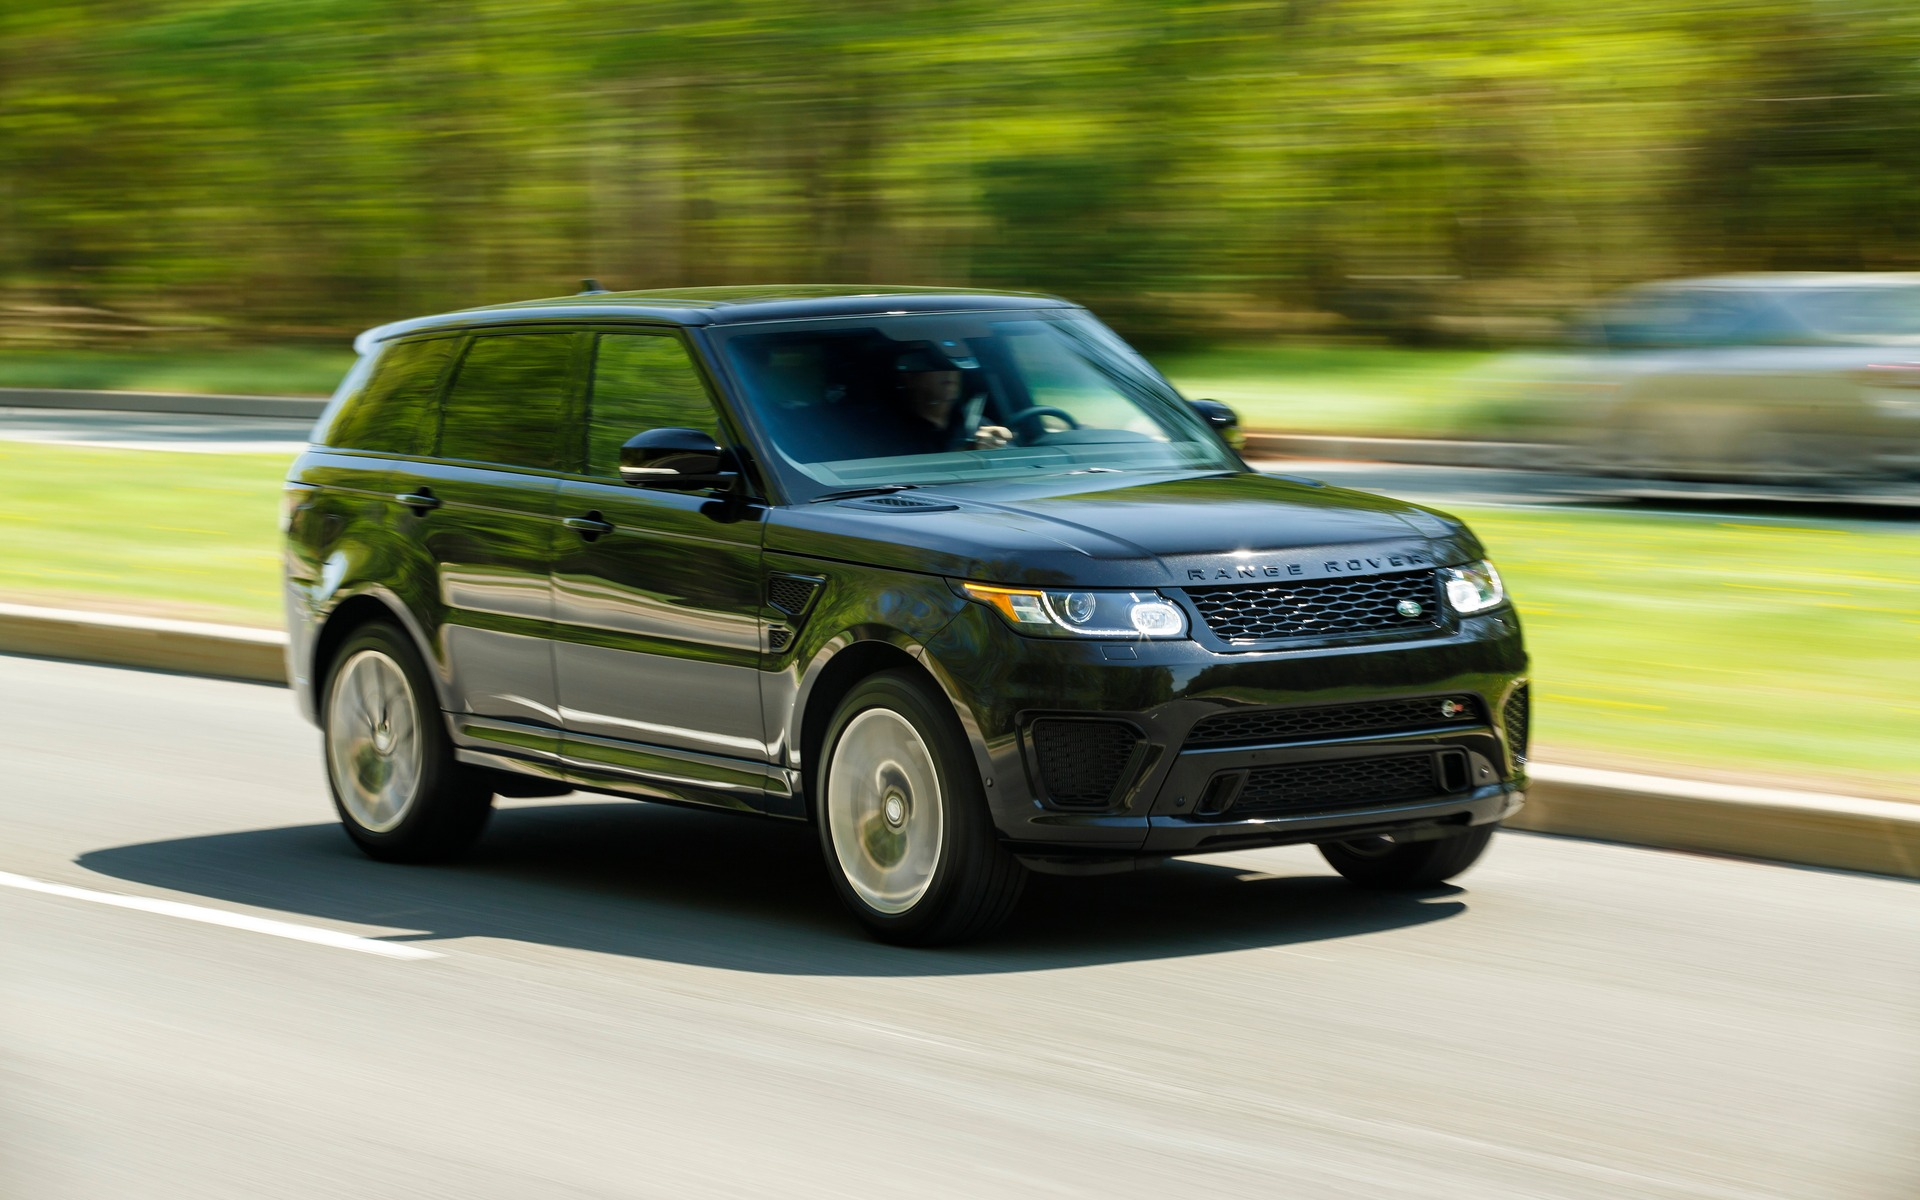 2017 Land Rover Range Rover Sport - News, reviews, picture galleries and  videos - The Car Guide